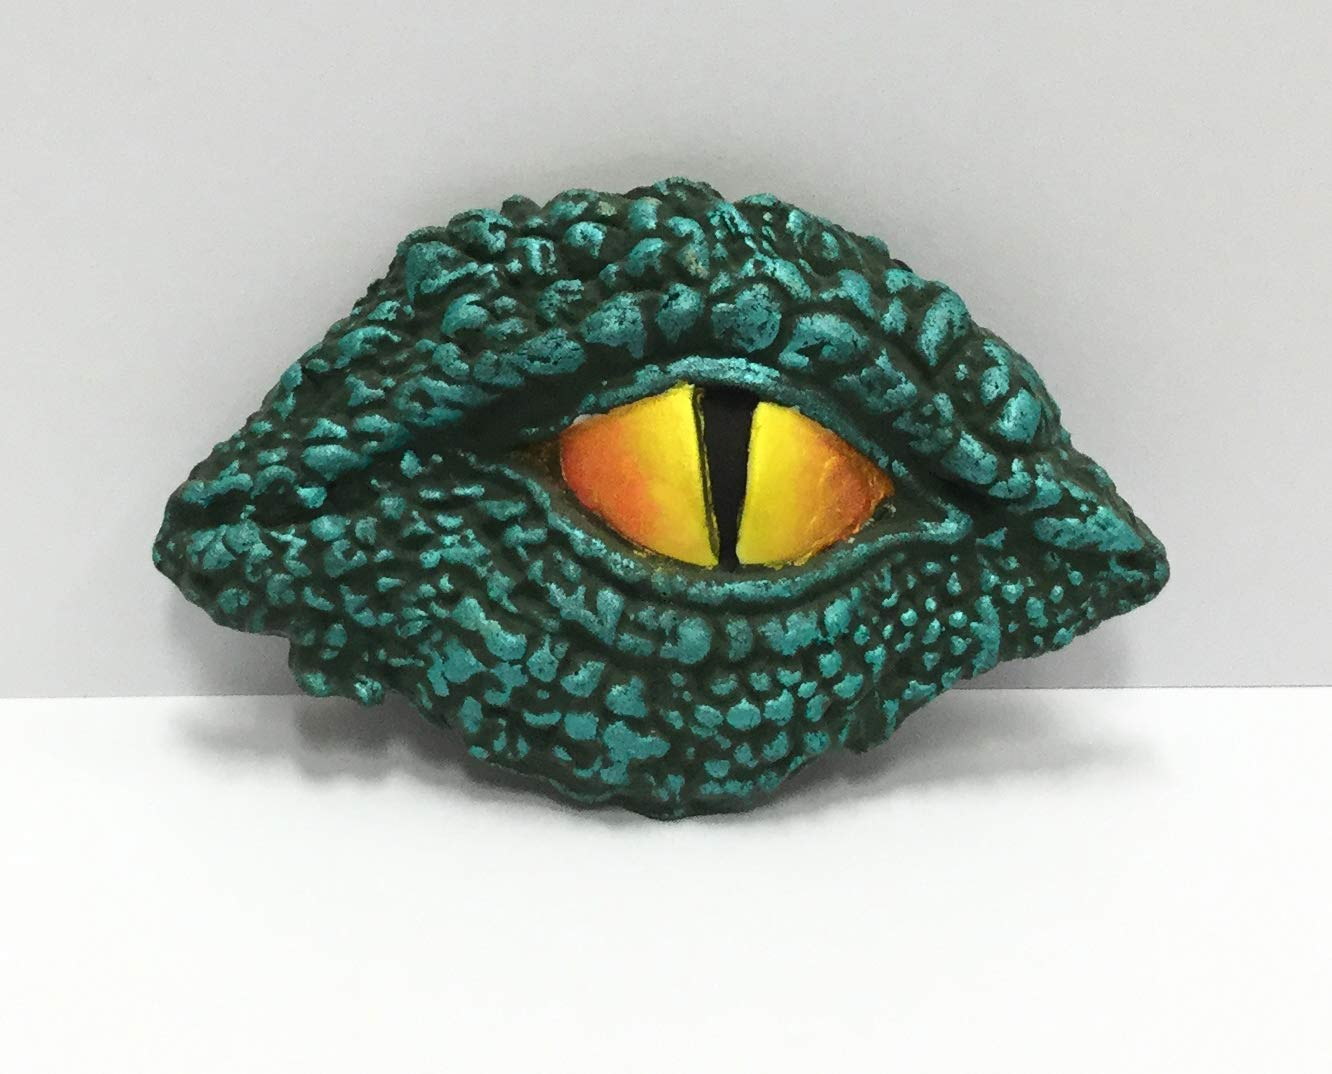 Dragon Eyes Silicone Mold for Cake Decorating, Cupcakes, Sugarcraft, Candies, Clay, Crafts and Card Making, Food Safe by Katy Sue (Image #9)